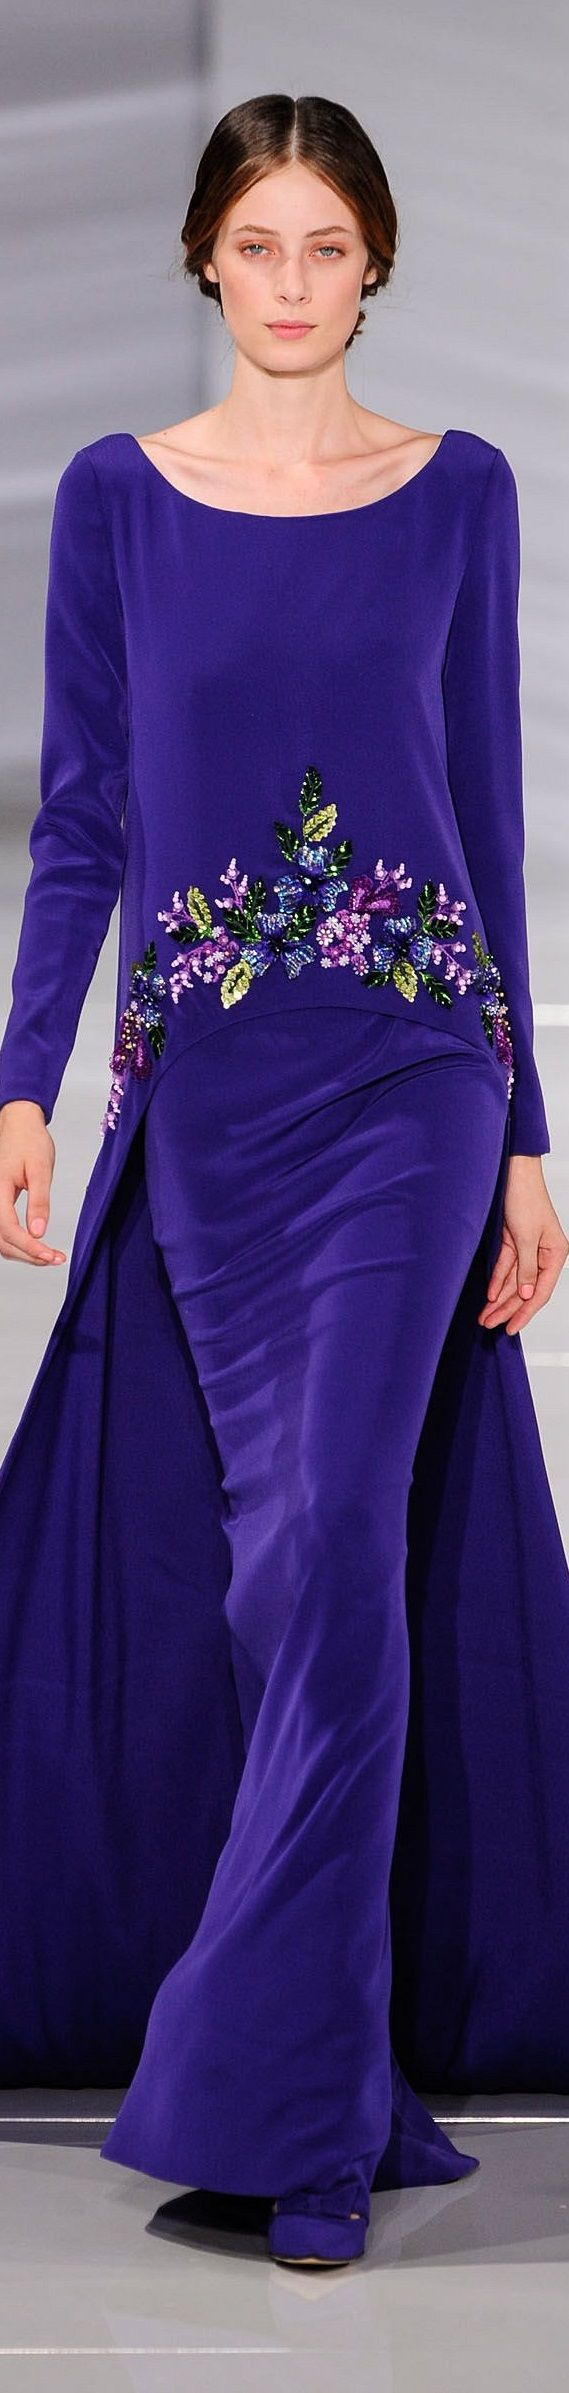 Georges Hobeika ~ Haute Couture Violet Velvet Floral Gown, Fall 2015-16 www.georgeshobeika.com jαɢlαdy